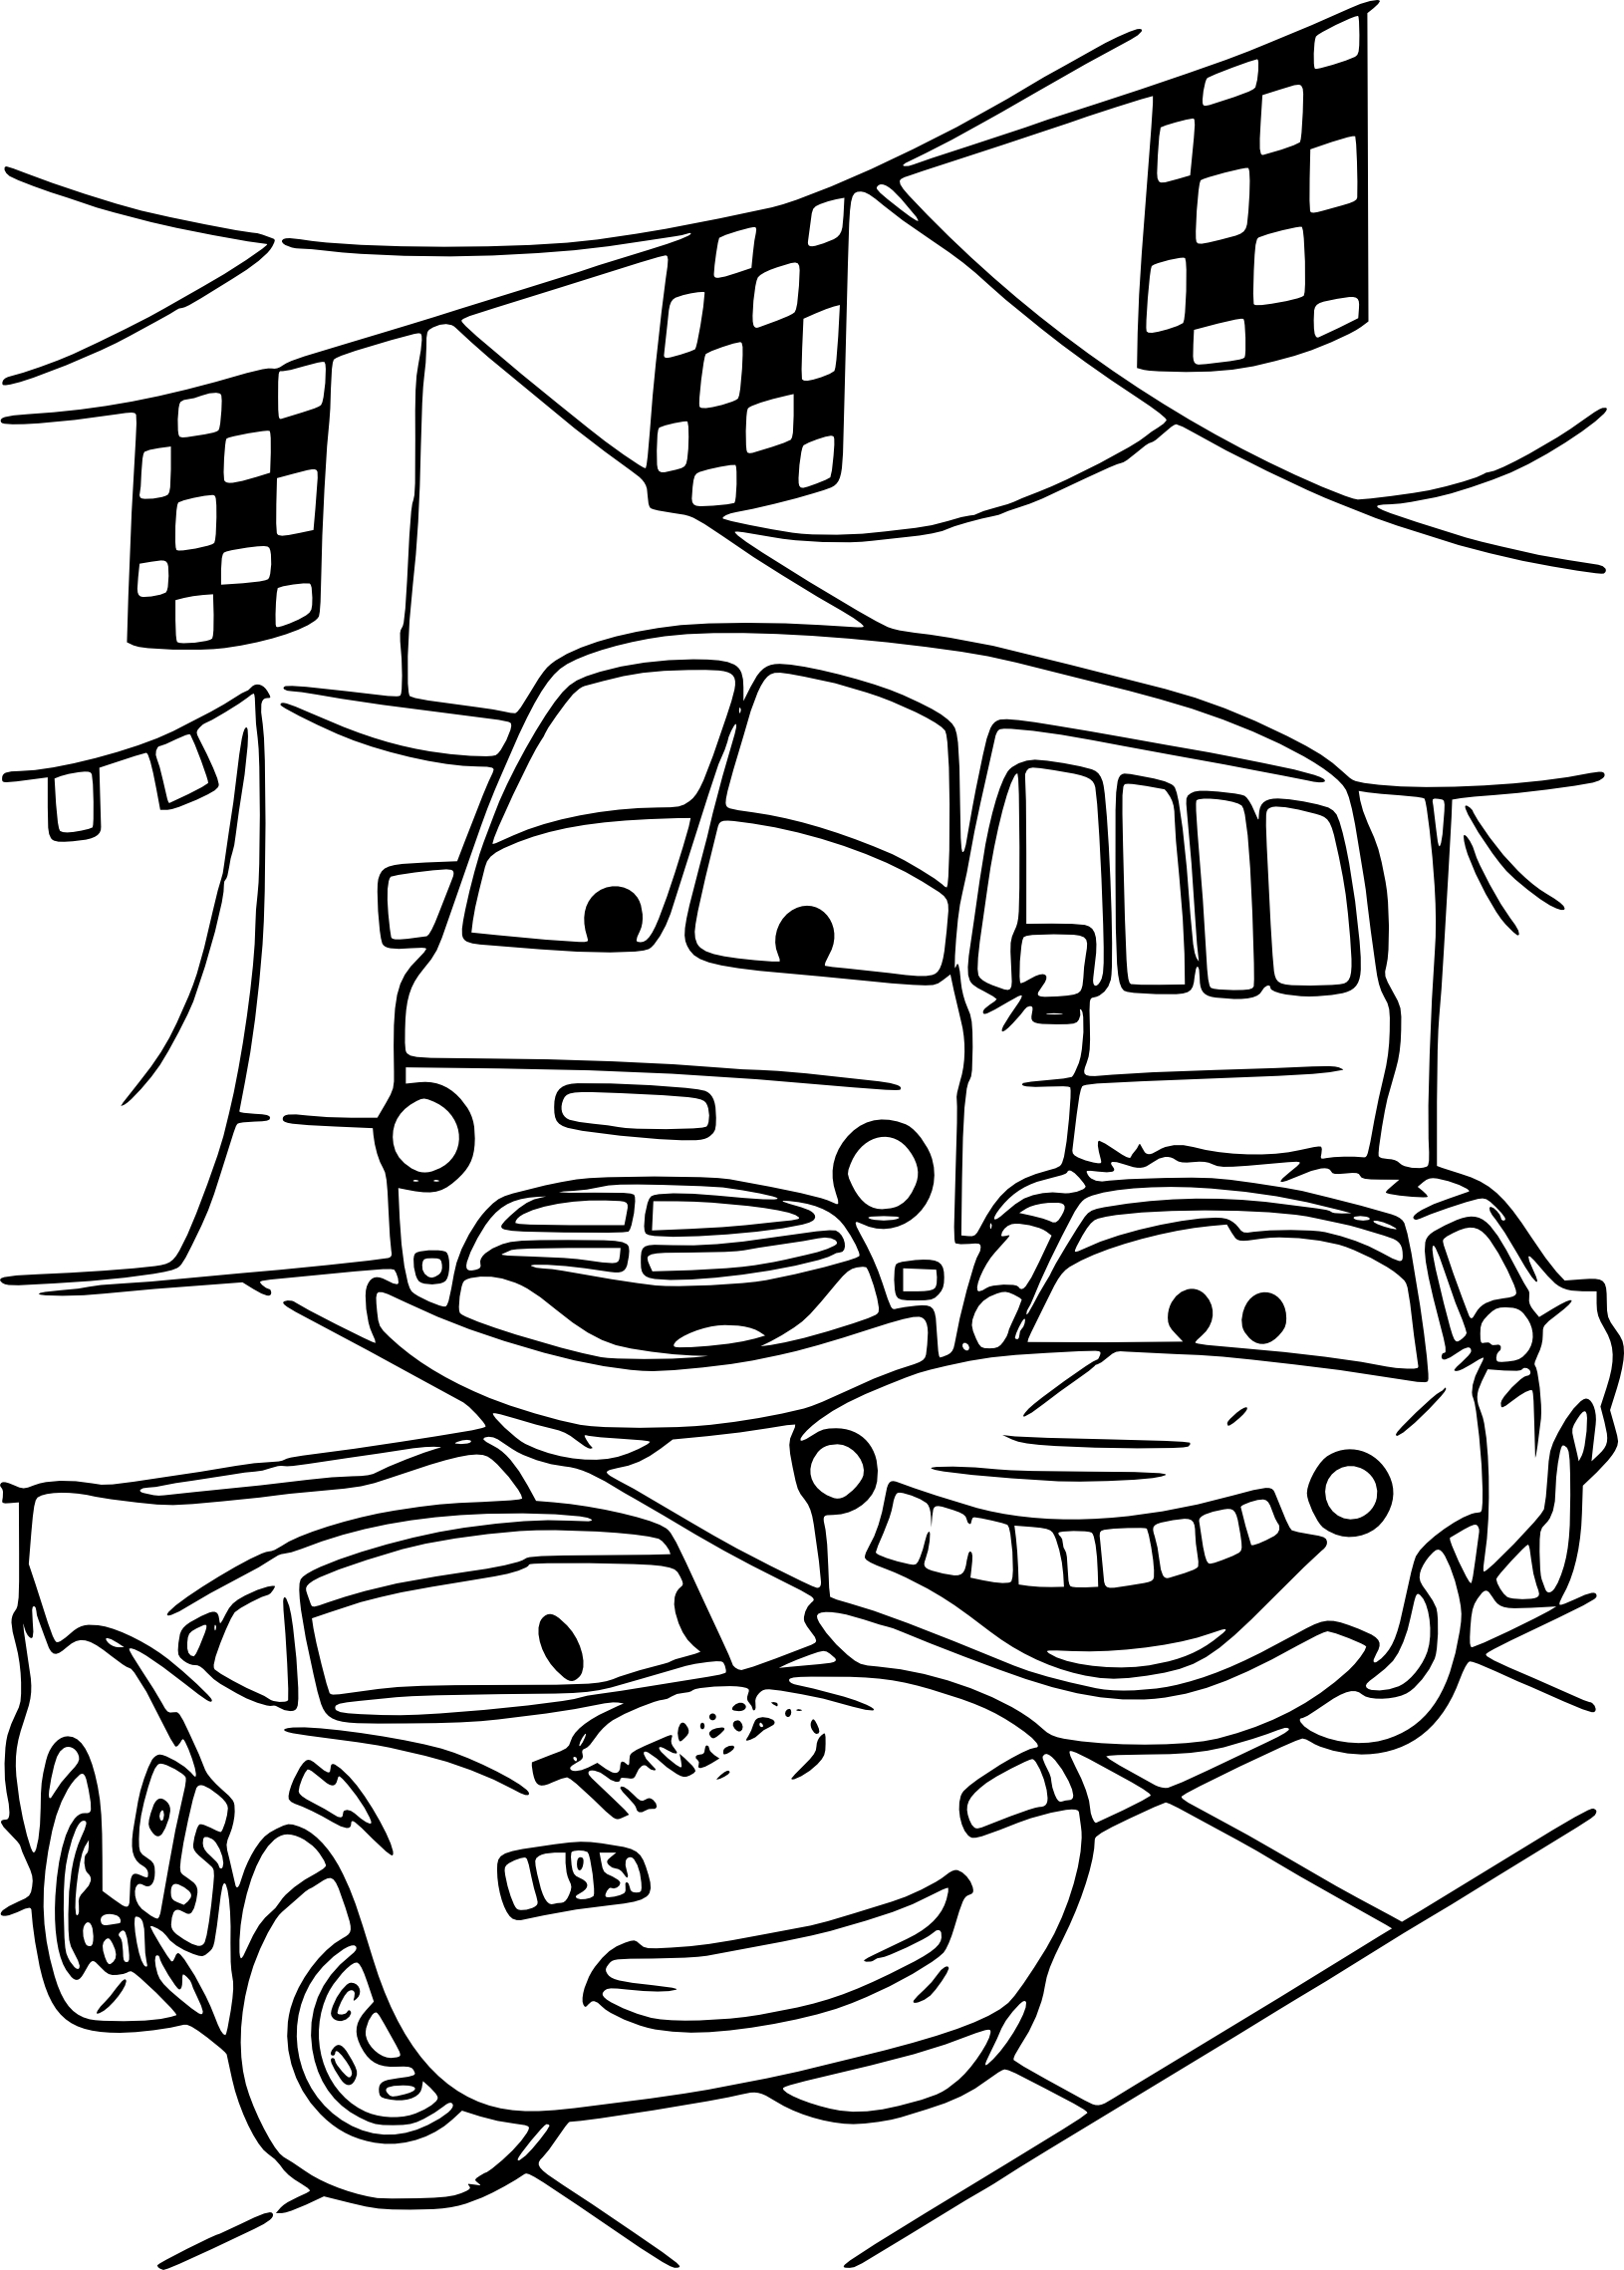 Cars coloriage disney cars imprimer - Car coloriage ...